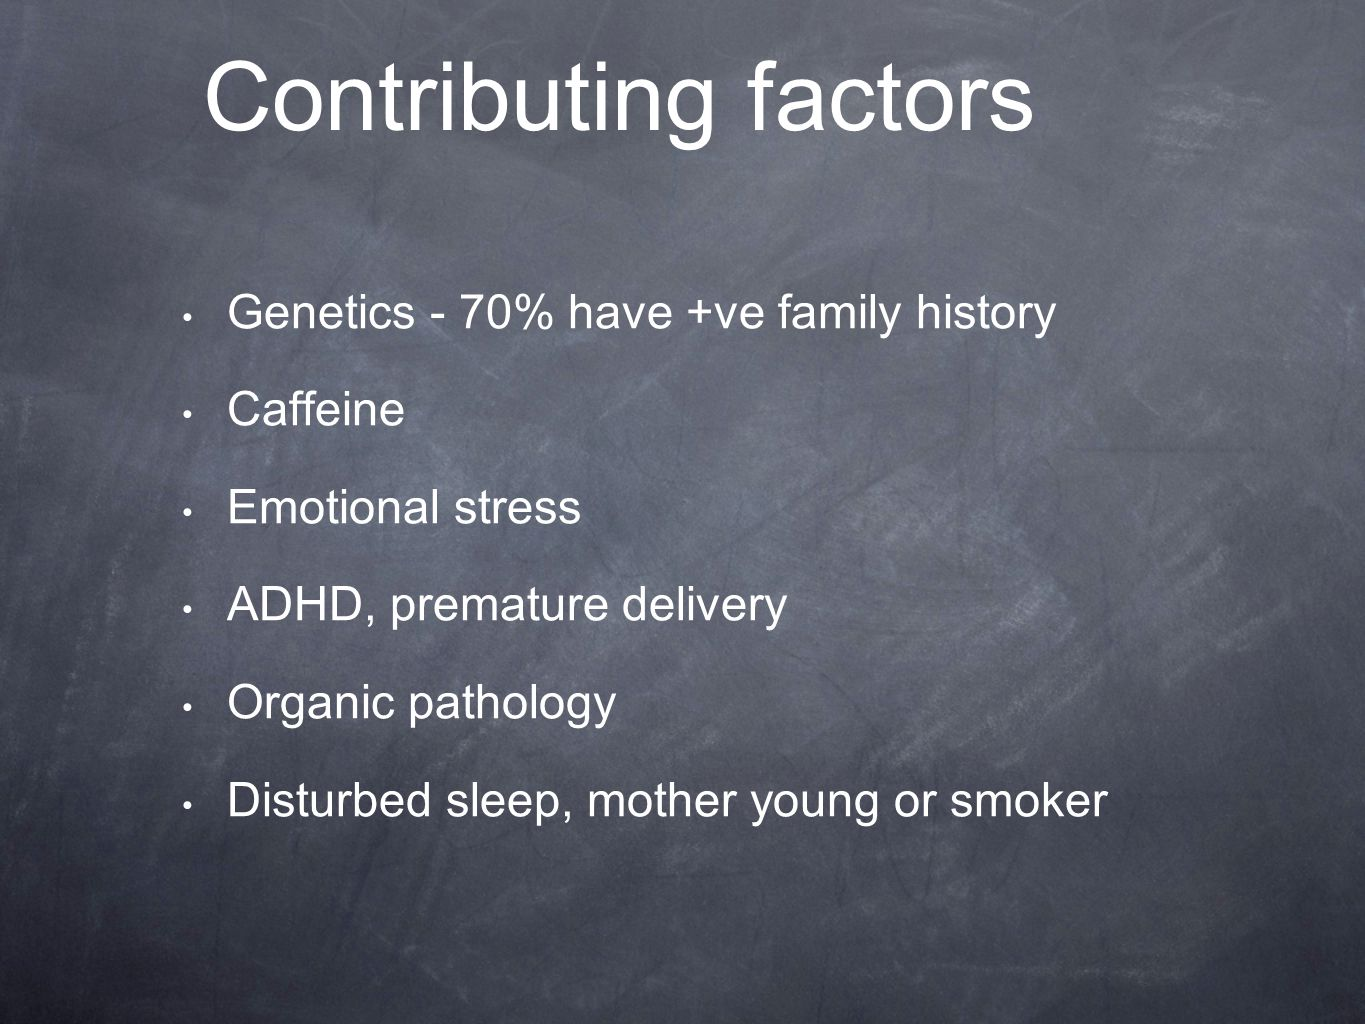 Contributing factors Genetics - 70% have +ve family history Caffeine Emotional stress ADHD, premature delivery Organic pathology Disturbed sleep, mother young or smoker